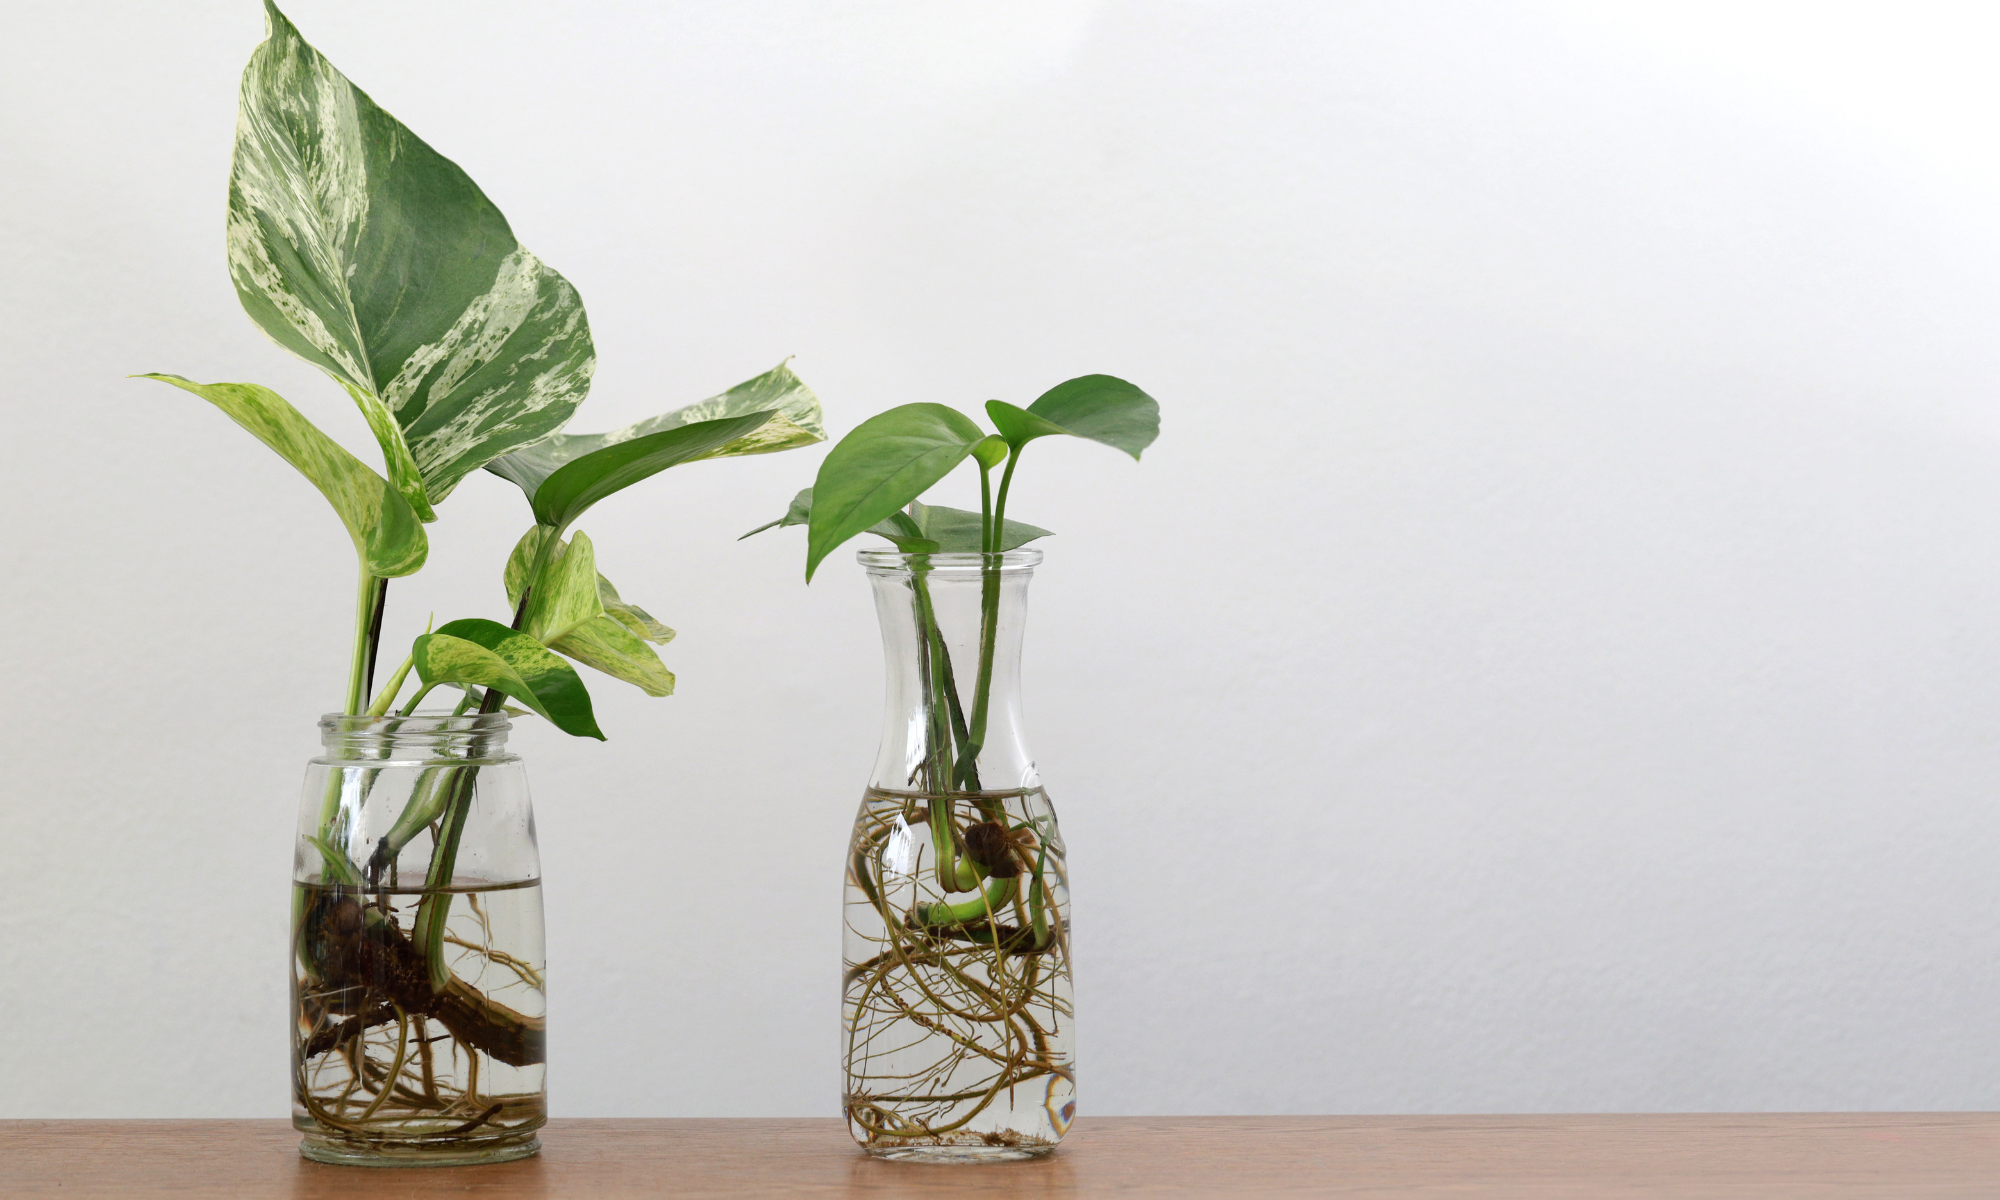 The Best Rooting Hormones for Propagating